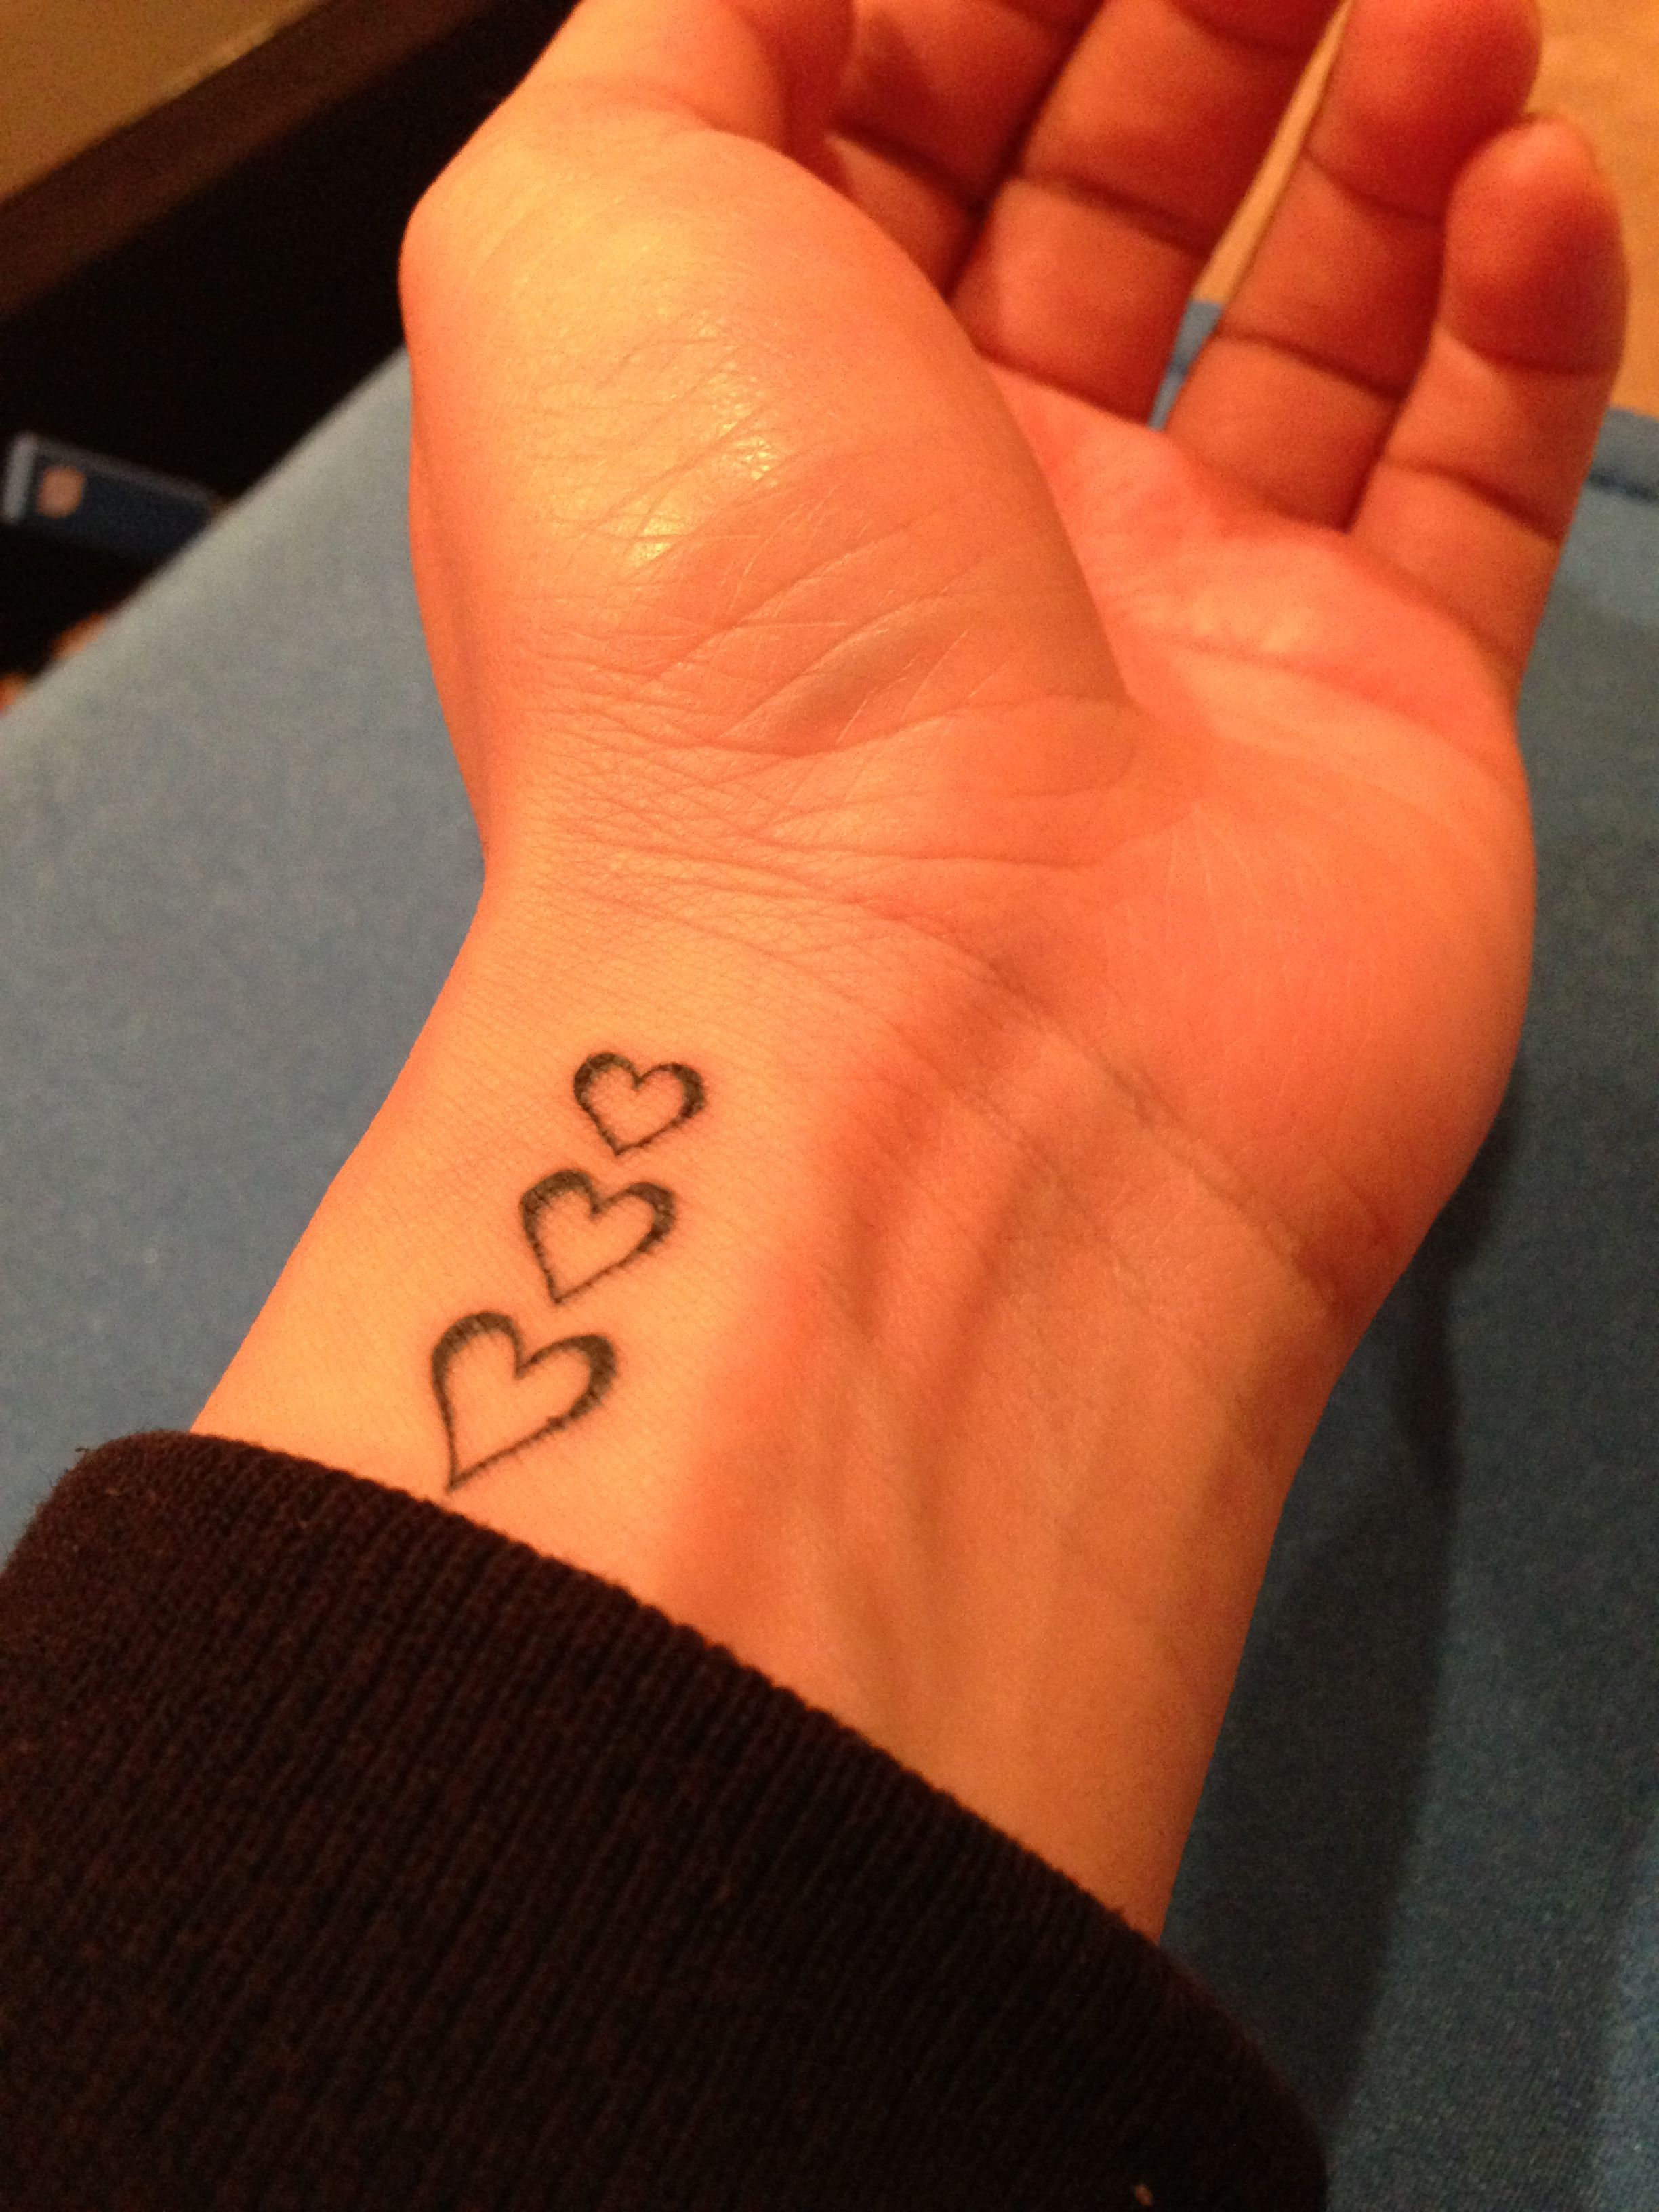 Hearts In A Row Tattoo On Wrist Maybe With The Word Love Next